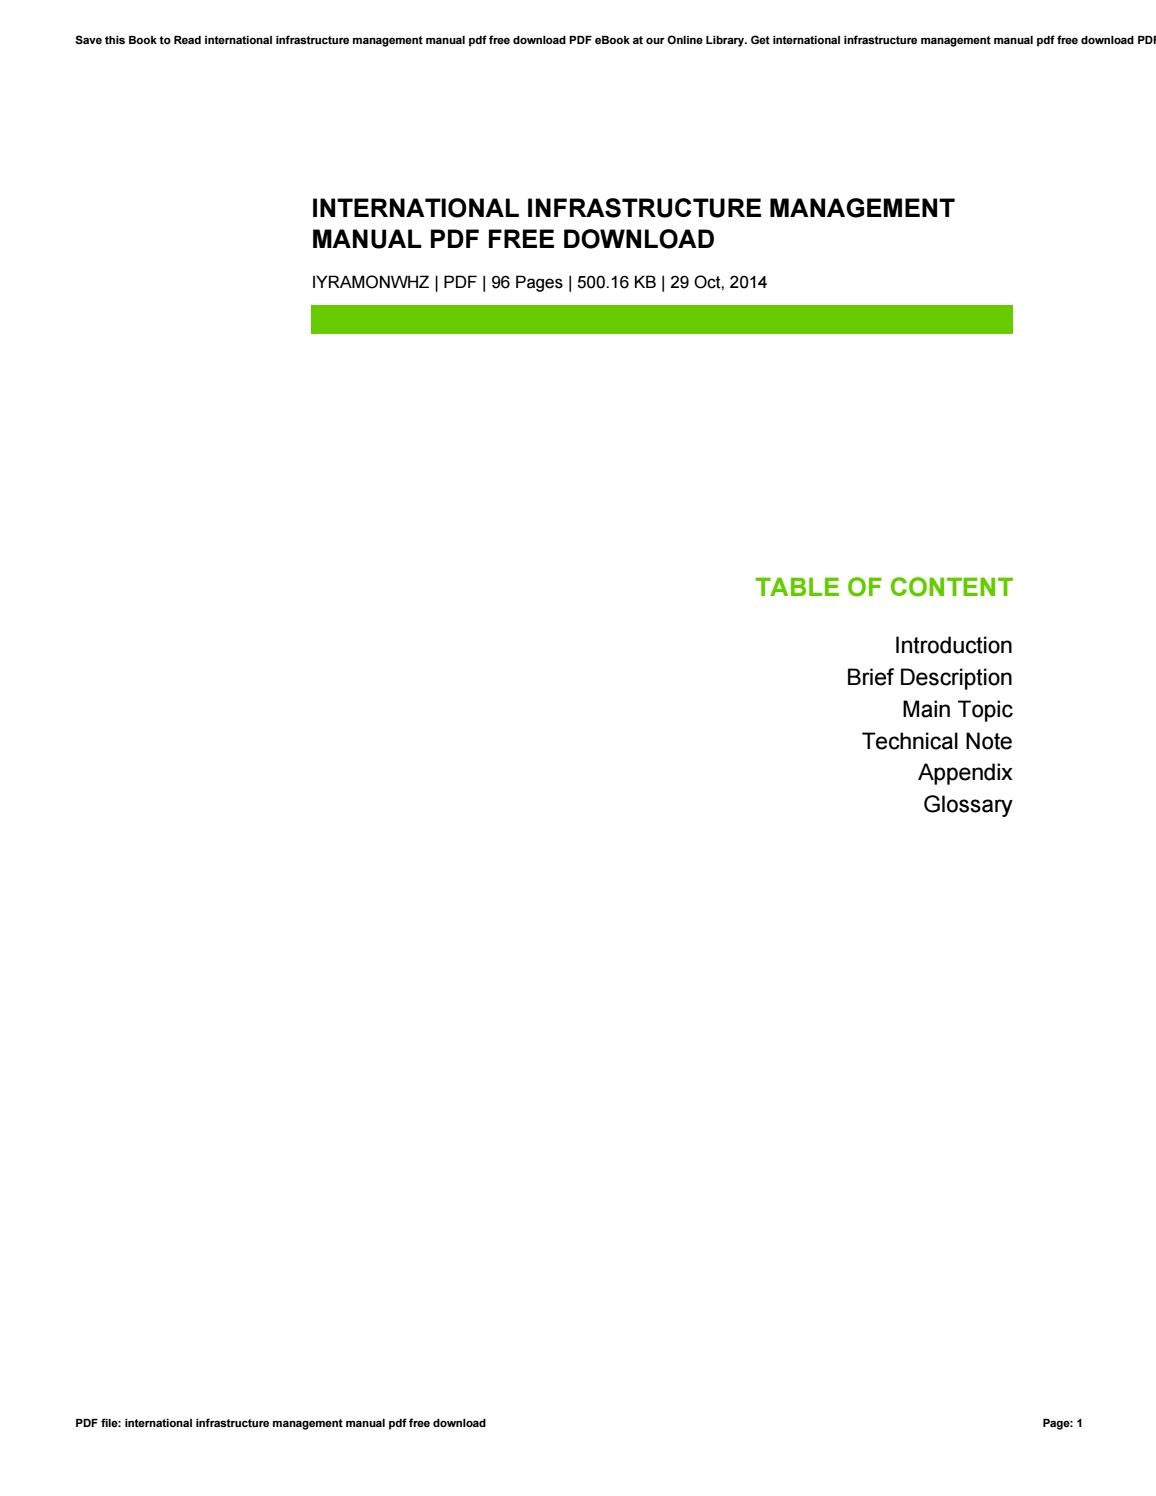 International infrastructure management manual pdf free download by  VeraGroves1428 - issuu